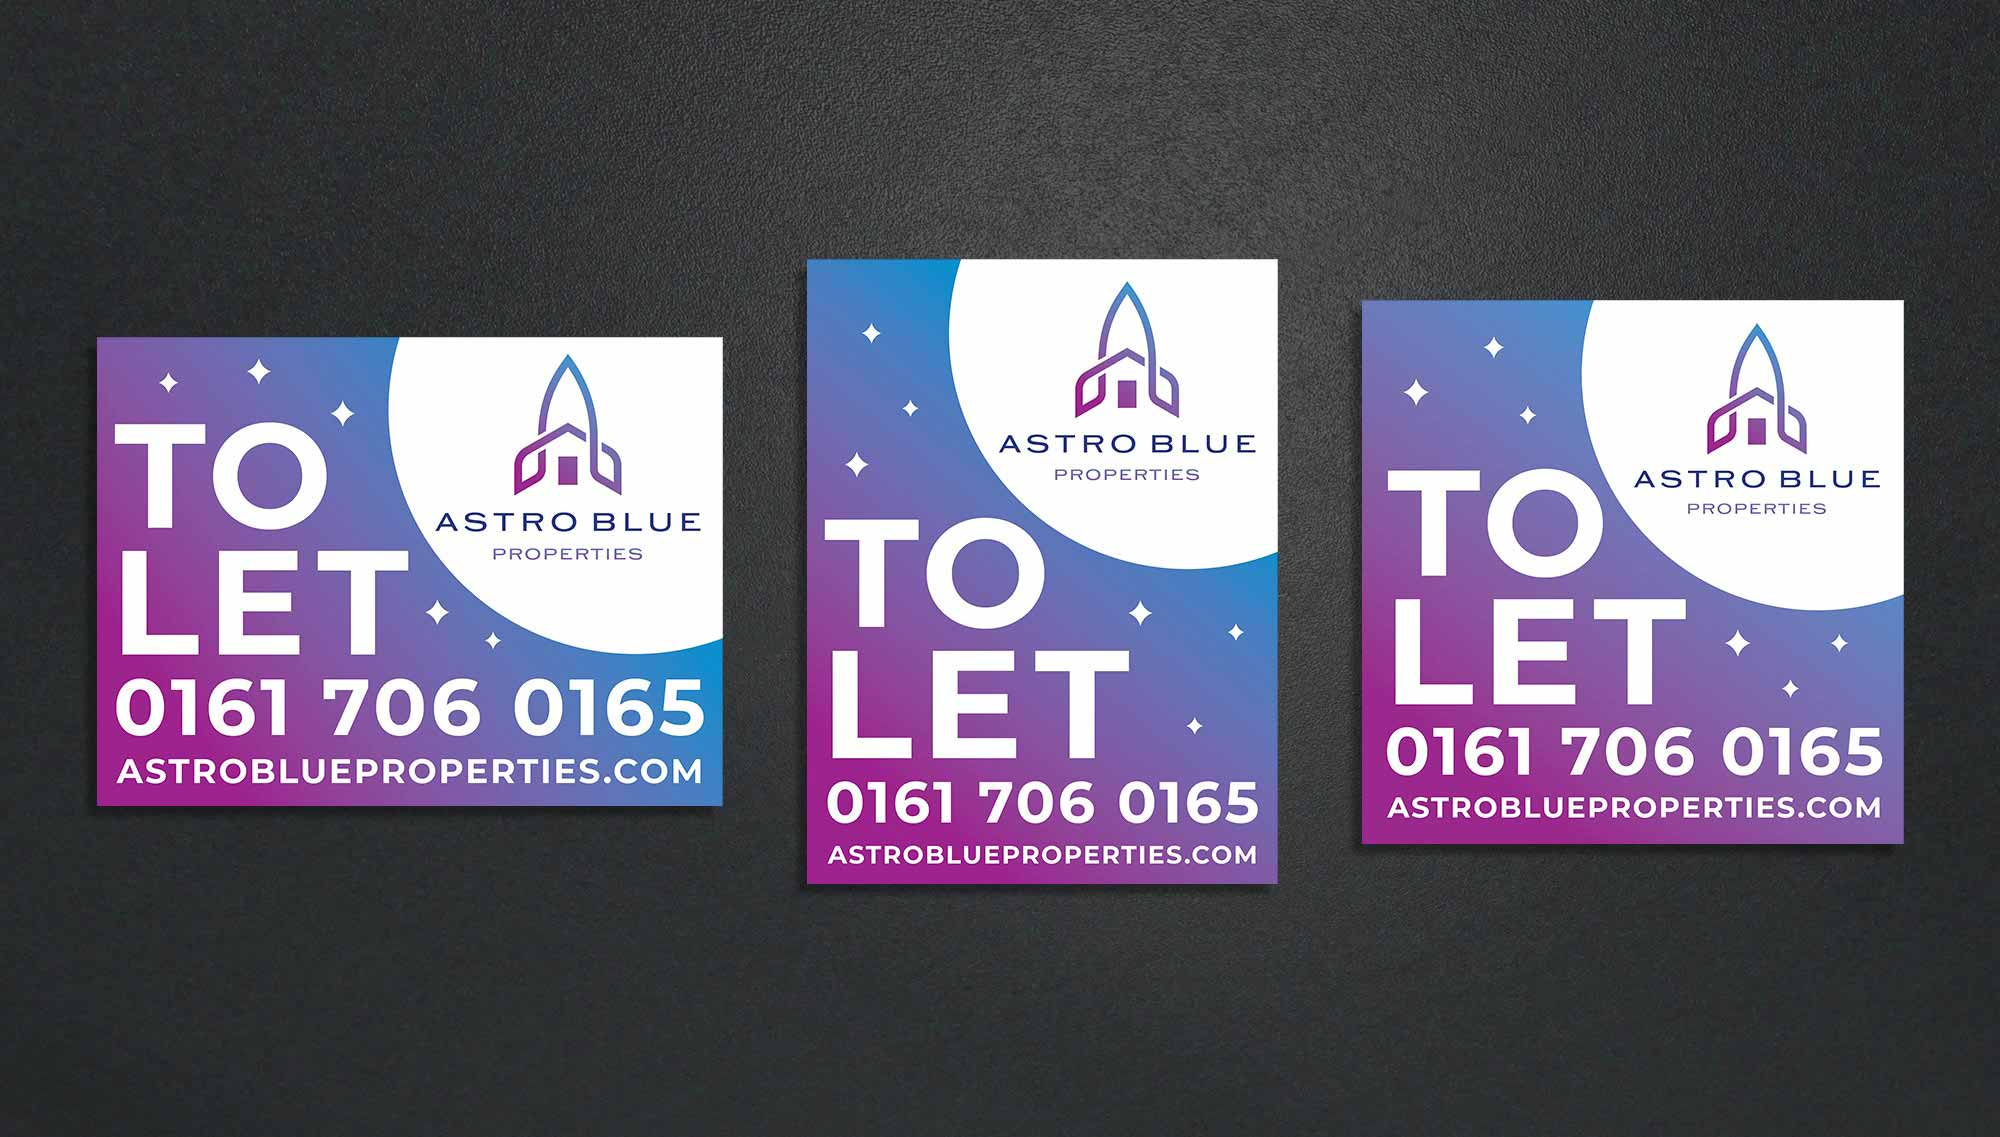 Astro Blue To Let Sign Design